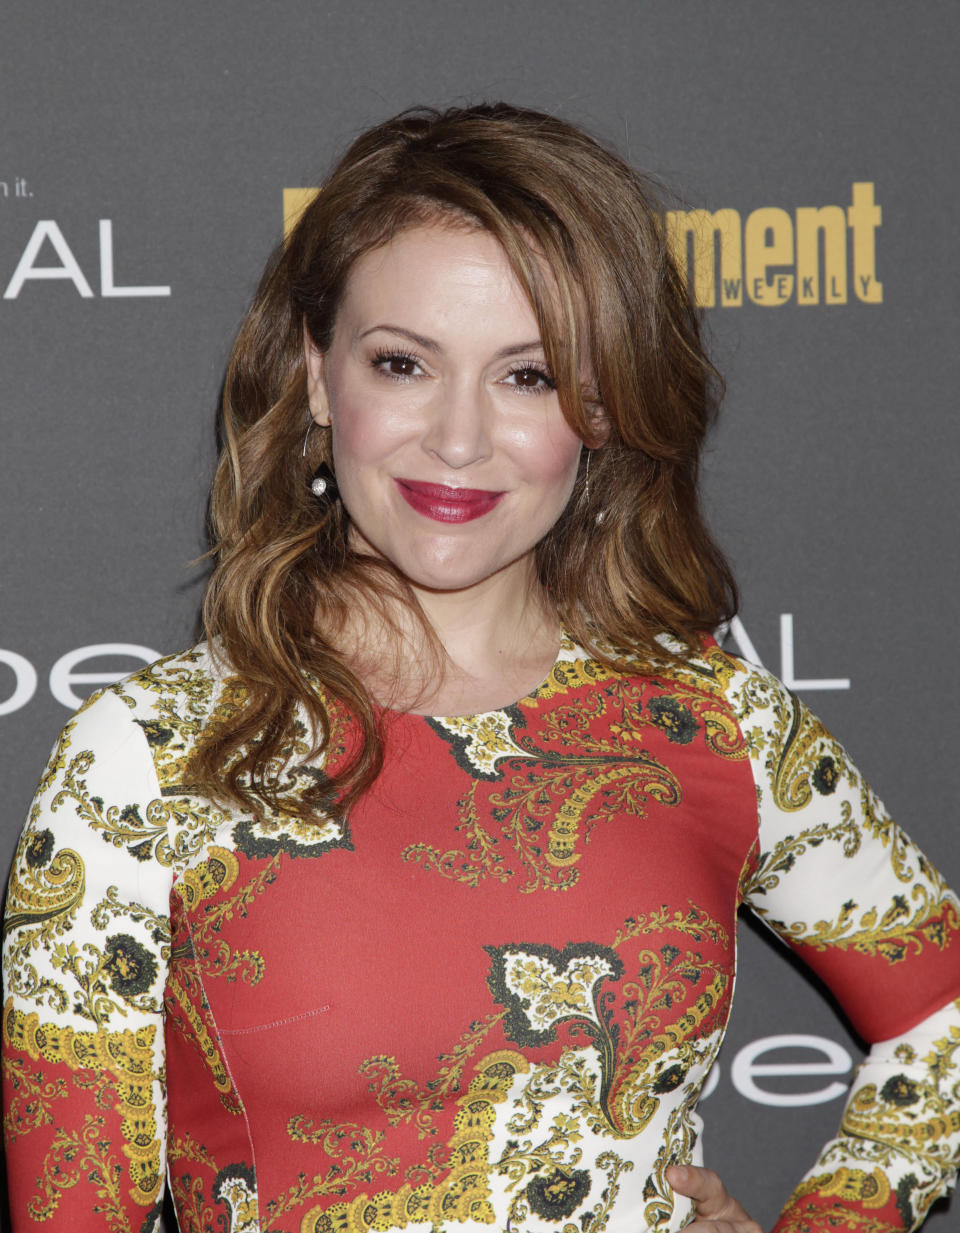 Alyssa Milano has started a viral campaign to encourage women to speak out about sexual assault [Photo: PA Images]